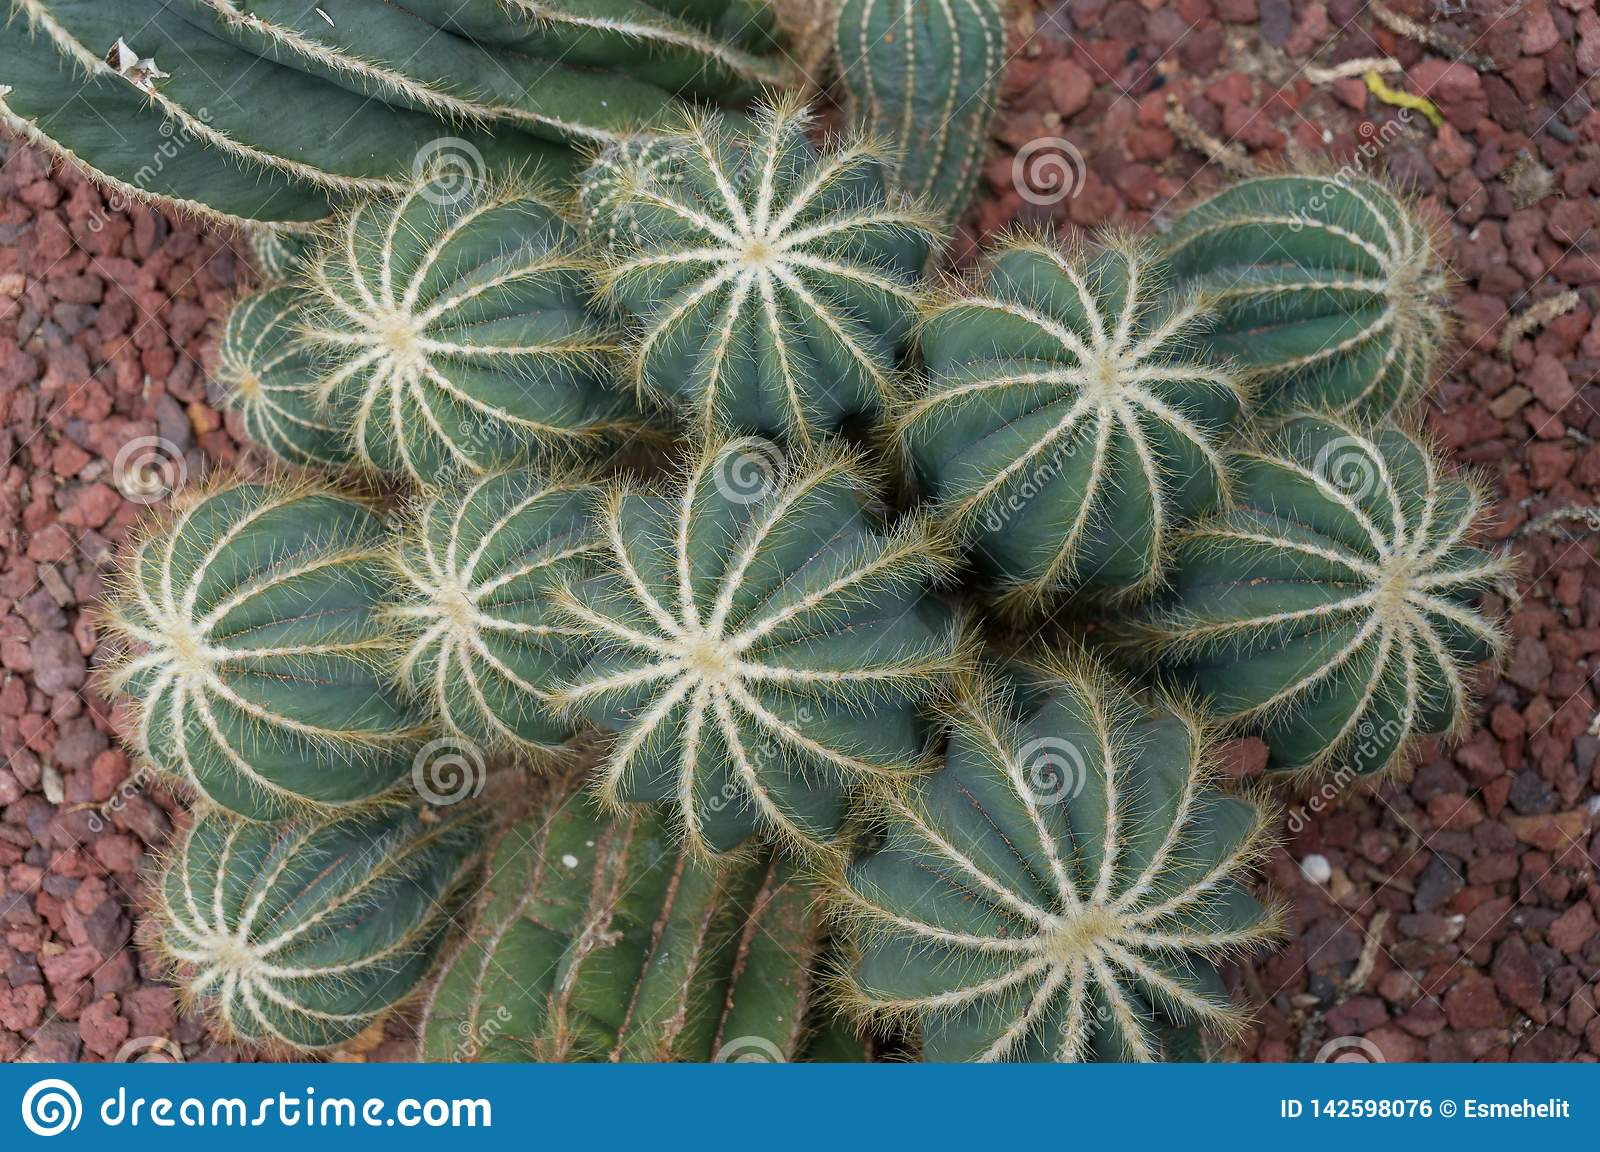 Cluster of golden barrel or mother-in-law cushion cacti